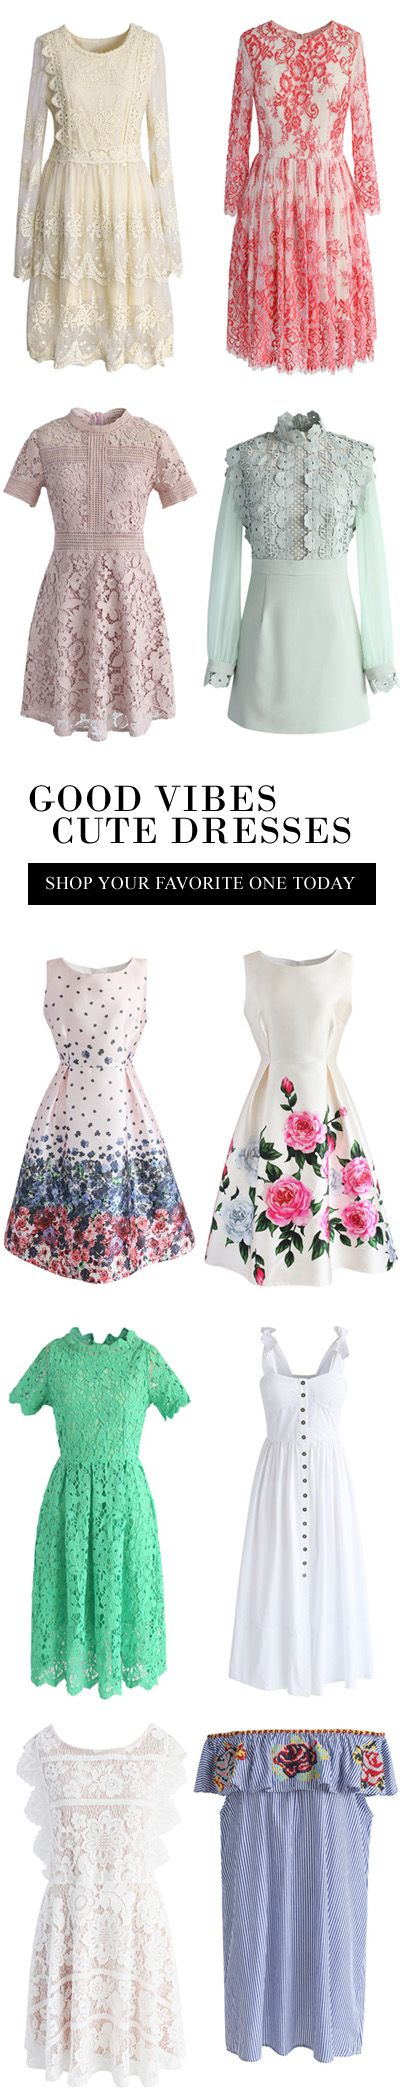 Find More Summer Dresses at chicwish.com